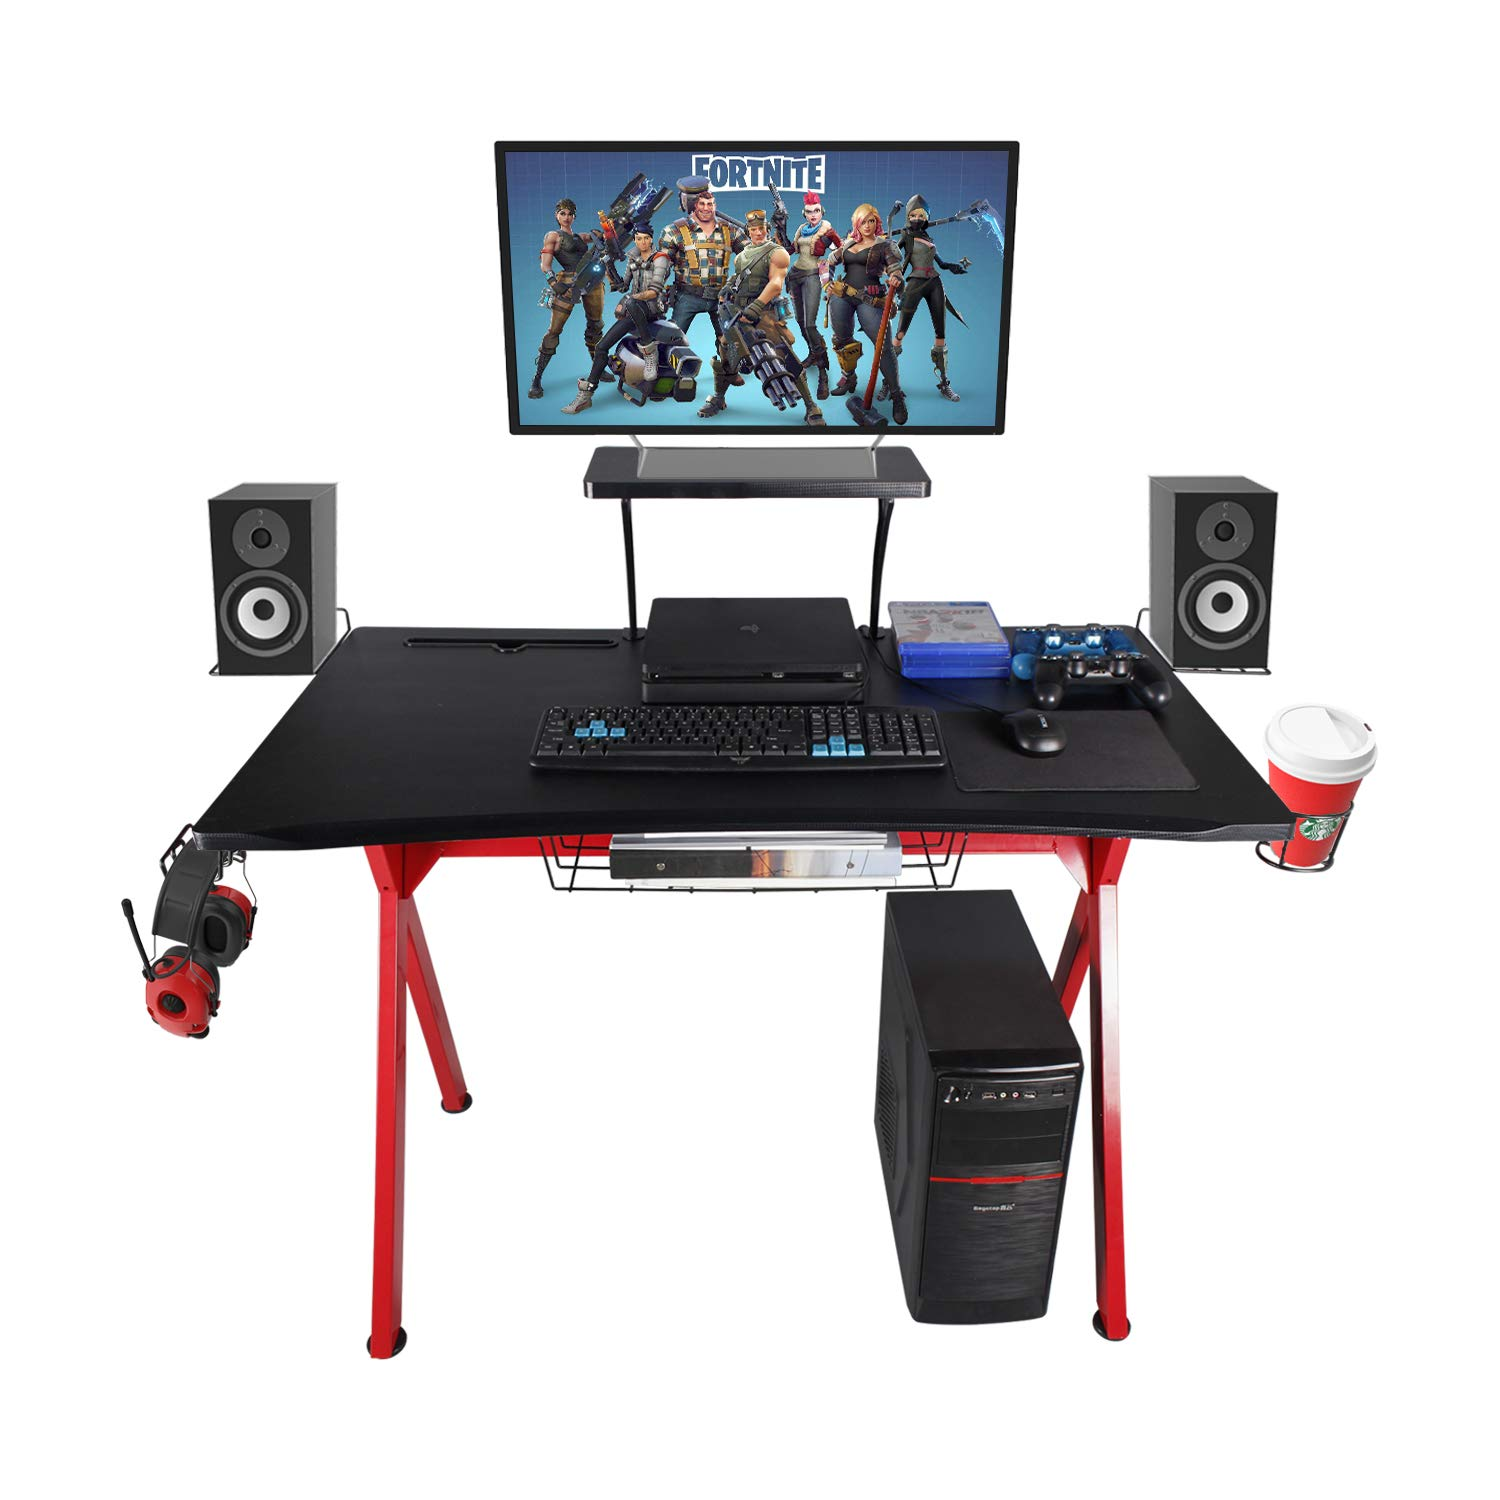 LAZZO Gaming Desk 41 Gaming Table Home Computer Desk with Display Support Plate, Cup Holder and Headphone Hook,Gamer Workstation Game Table, Curved Front Desktop,Red Black Design 41 Wx23.5 D